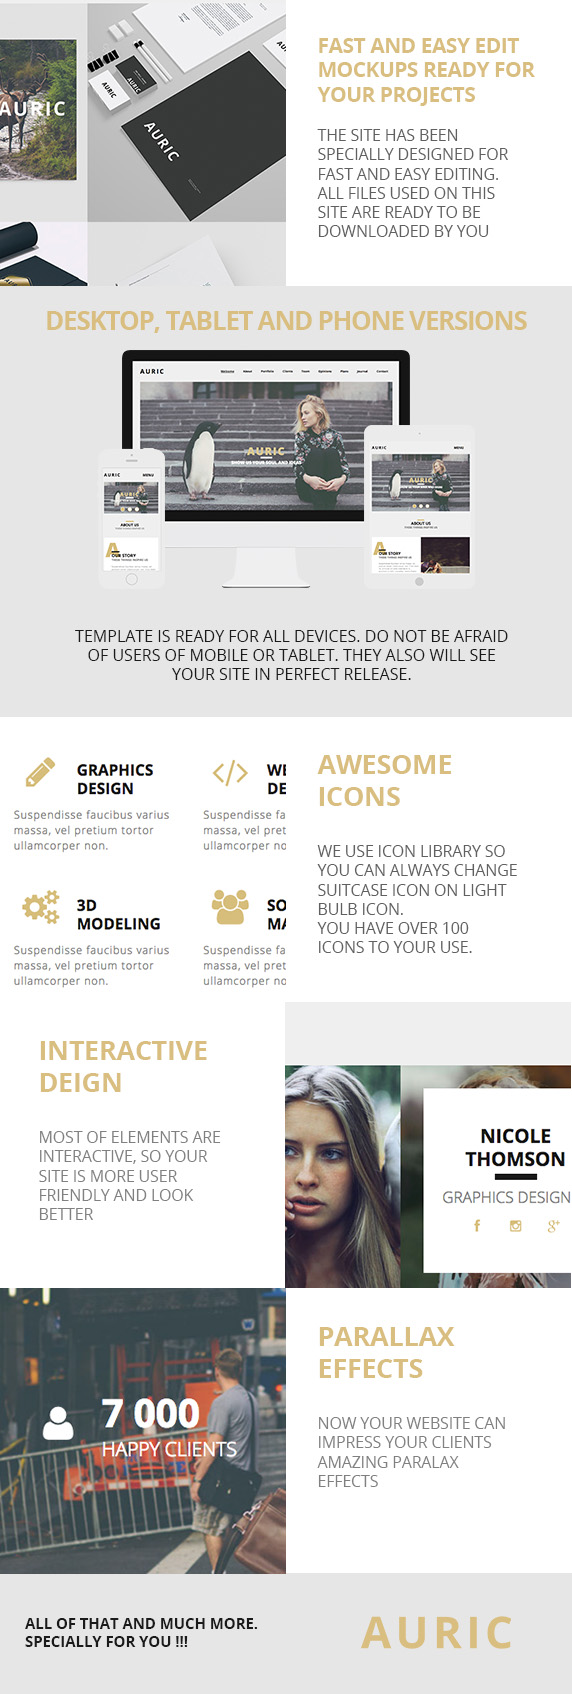 Auric - One Page Modern Muse Template